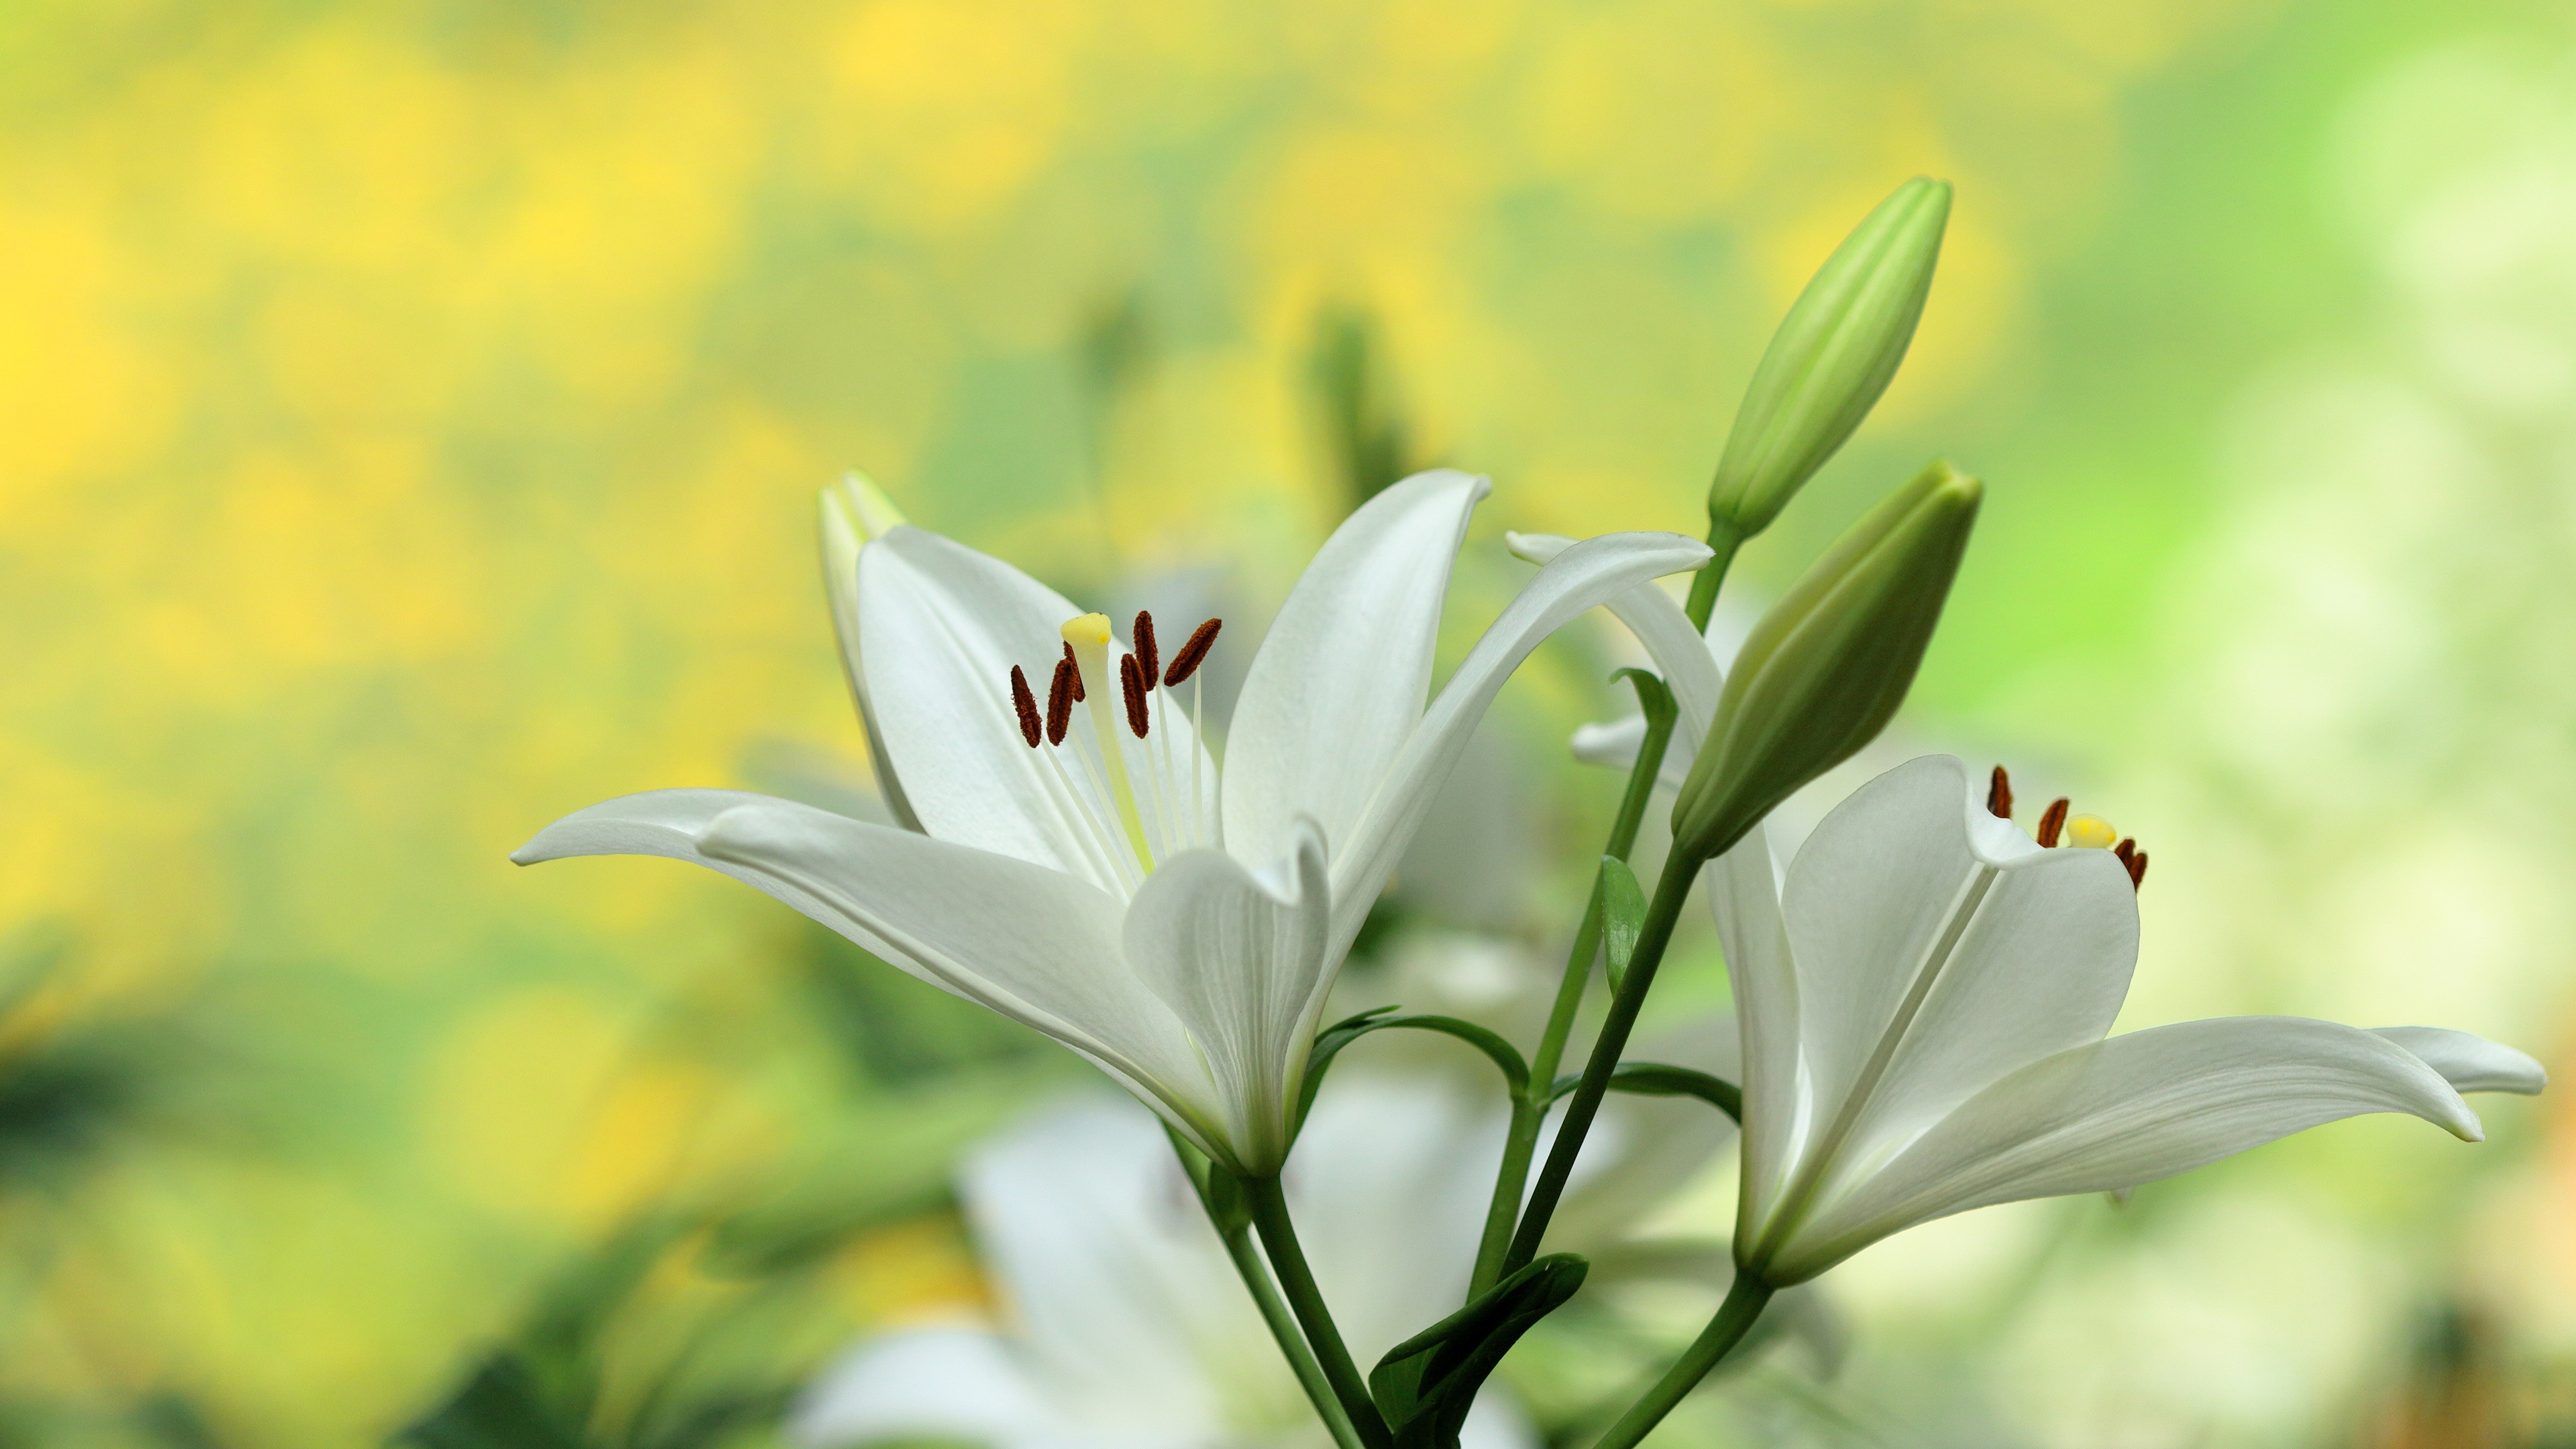 Wallpaper white lily flowers photography 3840x2160 uhd 4k picture download this wallpaper izmirmasajfo